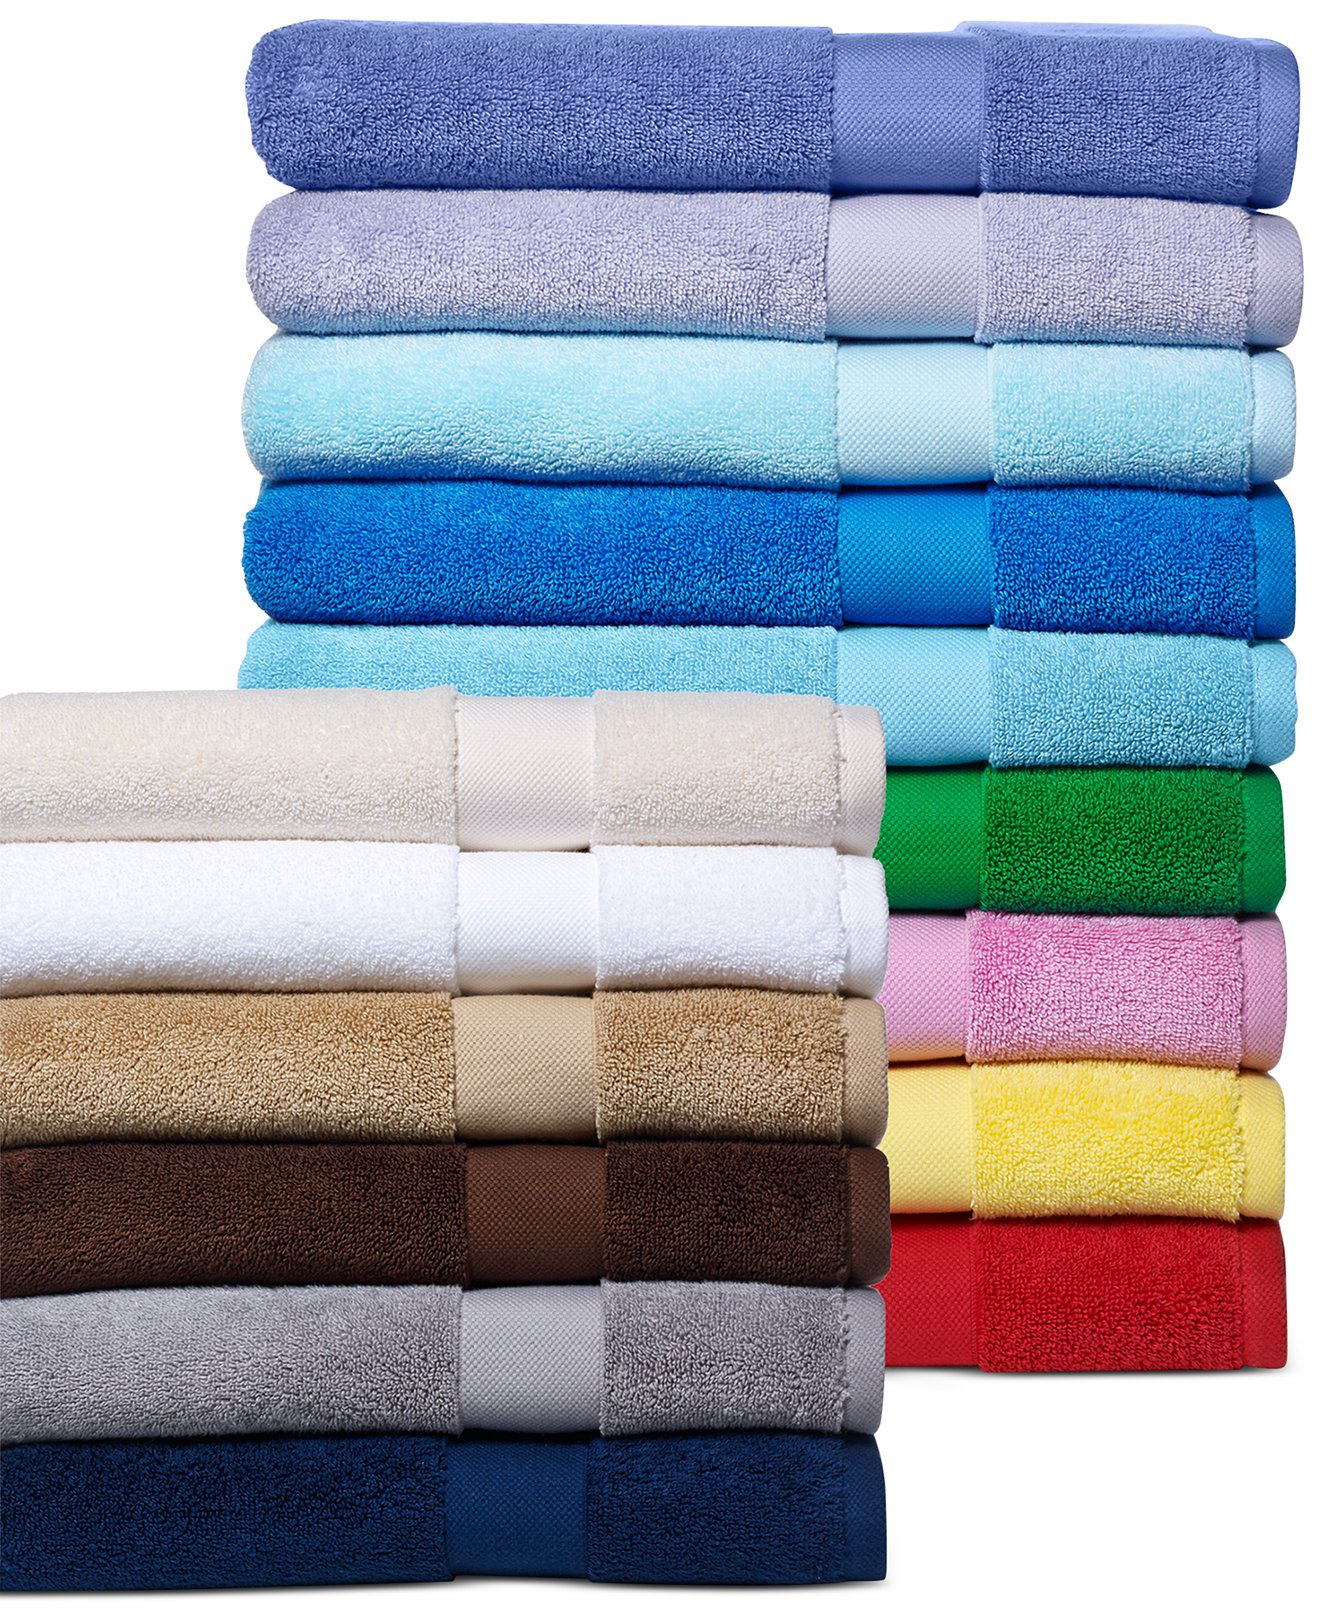 Price Break Wescott Bath Towel Collection 100 Cotton Towel